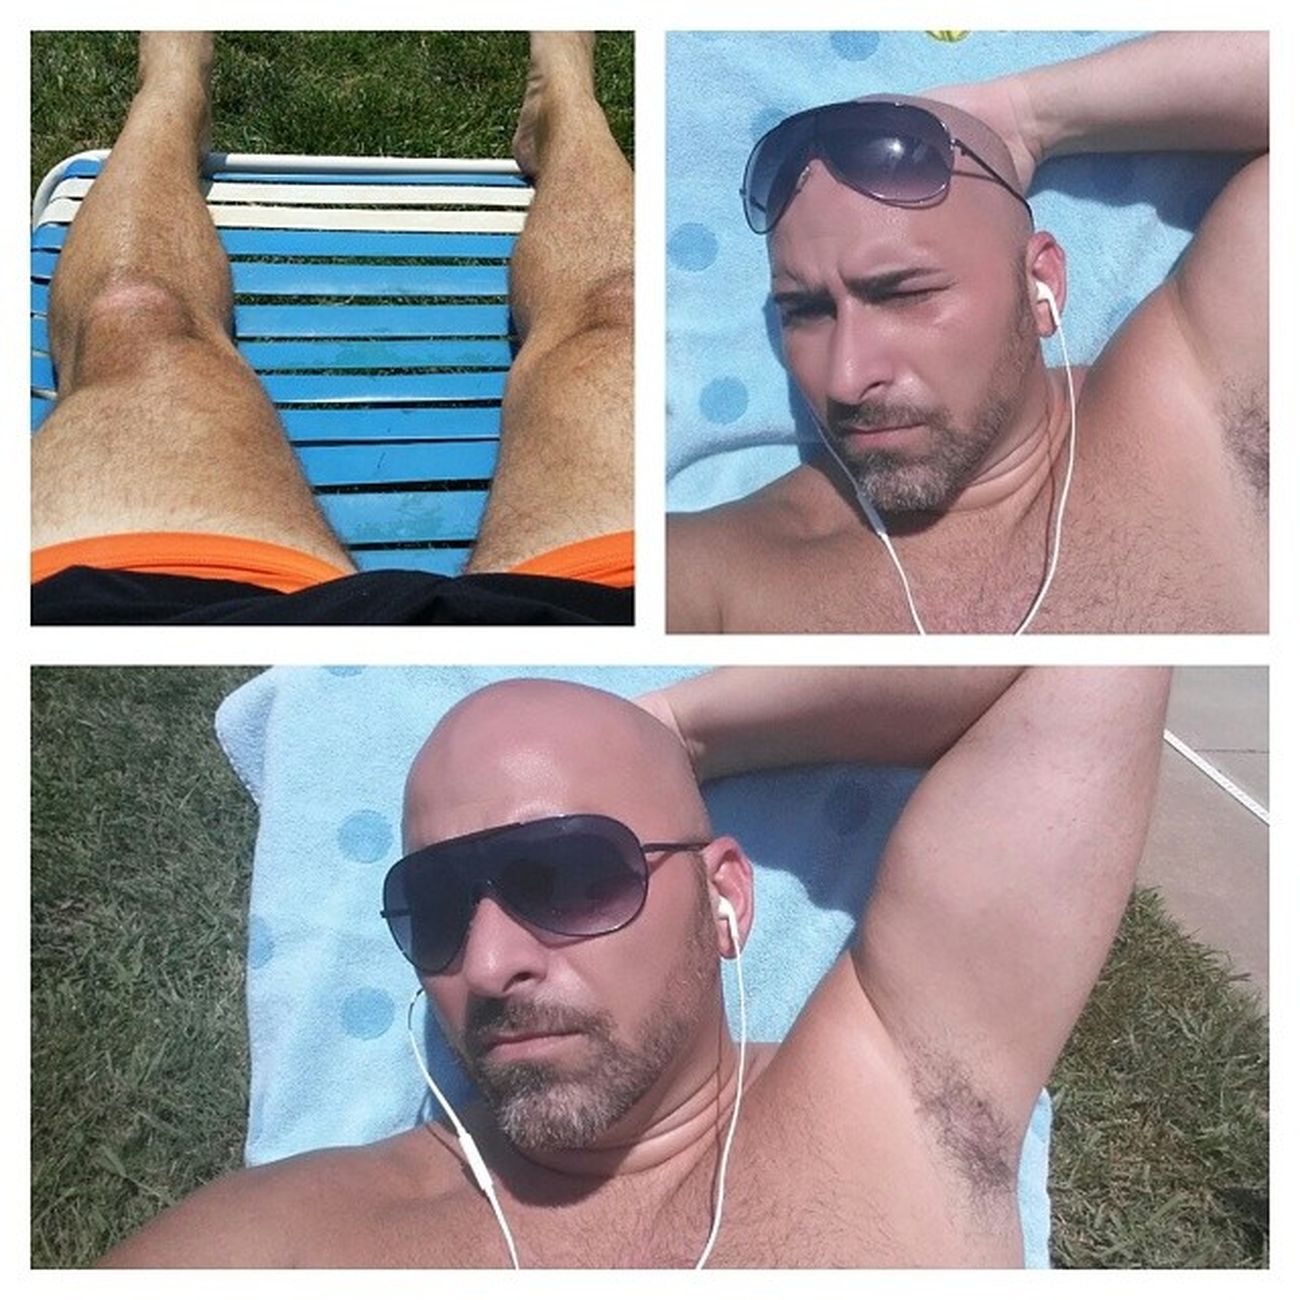 Tanning & Relaxing! Smiling , Puertorican , Gayrican , TBT  , thinking, gaycharlotte, healthyliving, healing, relaxing, gayitalian, gayman